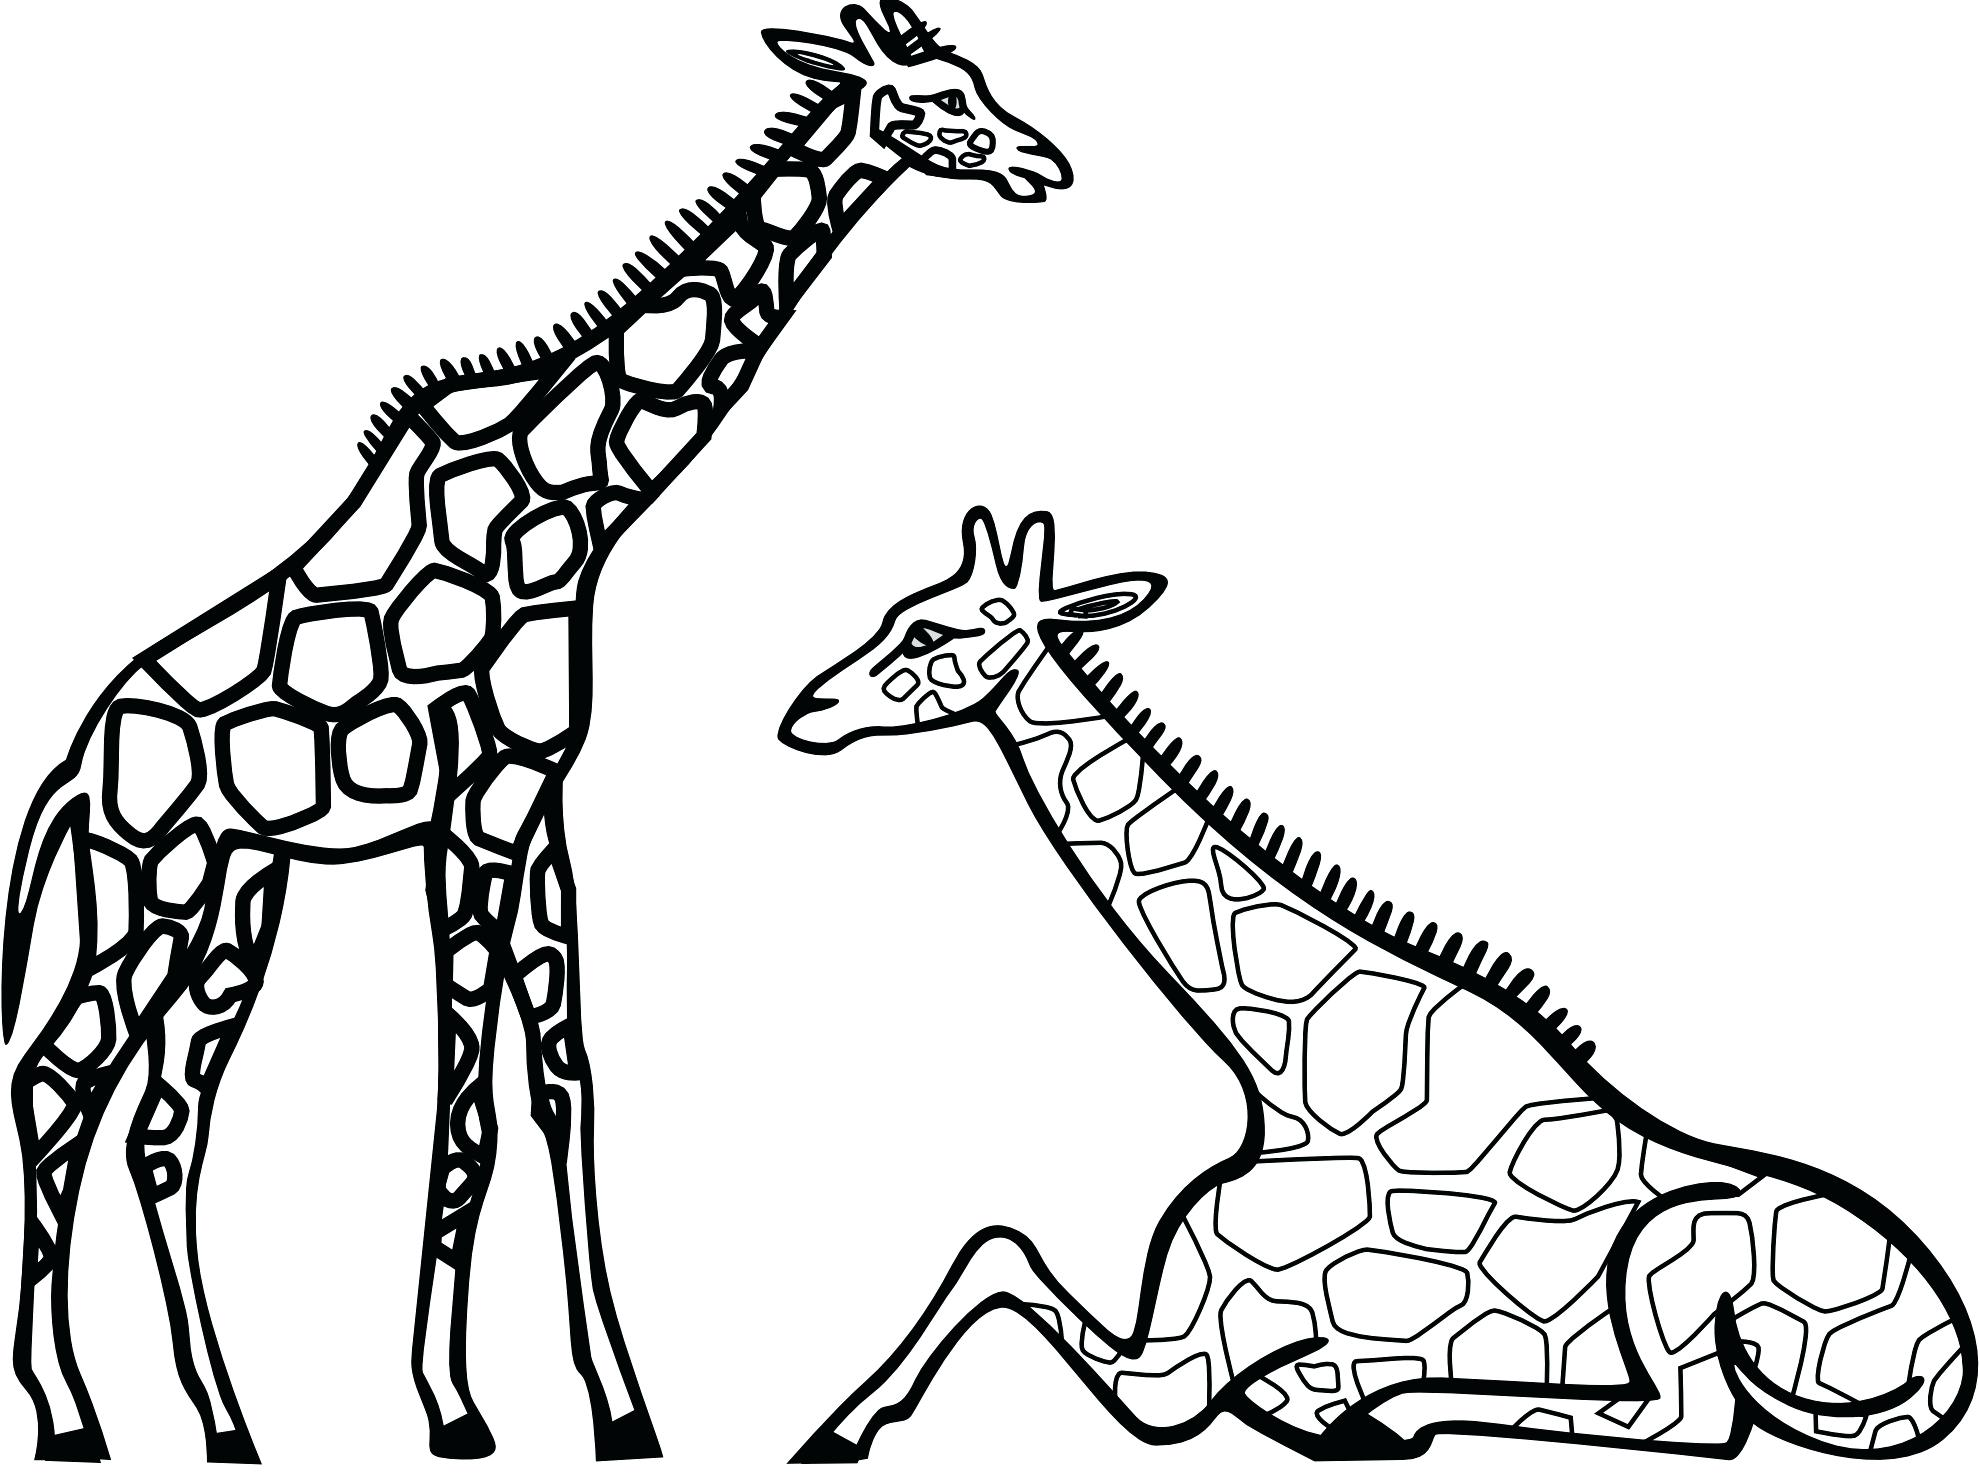 1979x1483 Coloring Outstanding Printable Pictures Of Giraffes. Printable